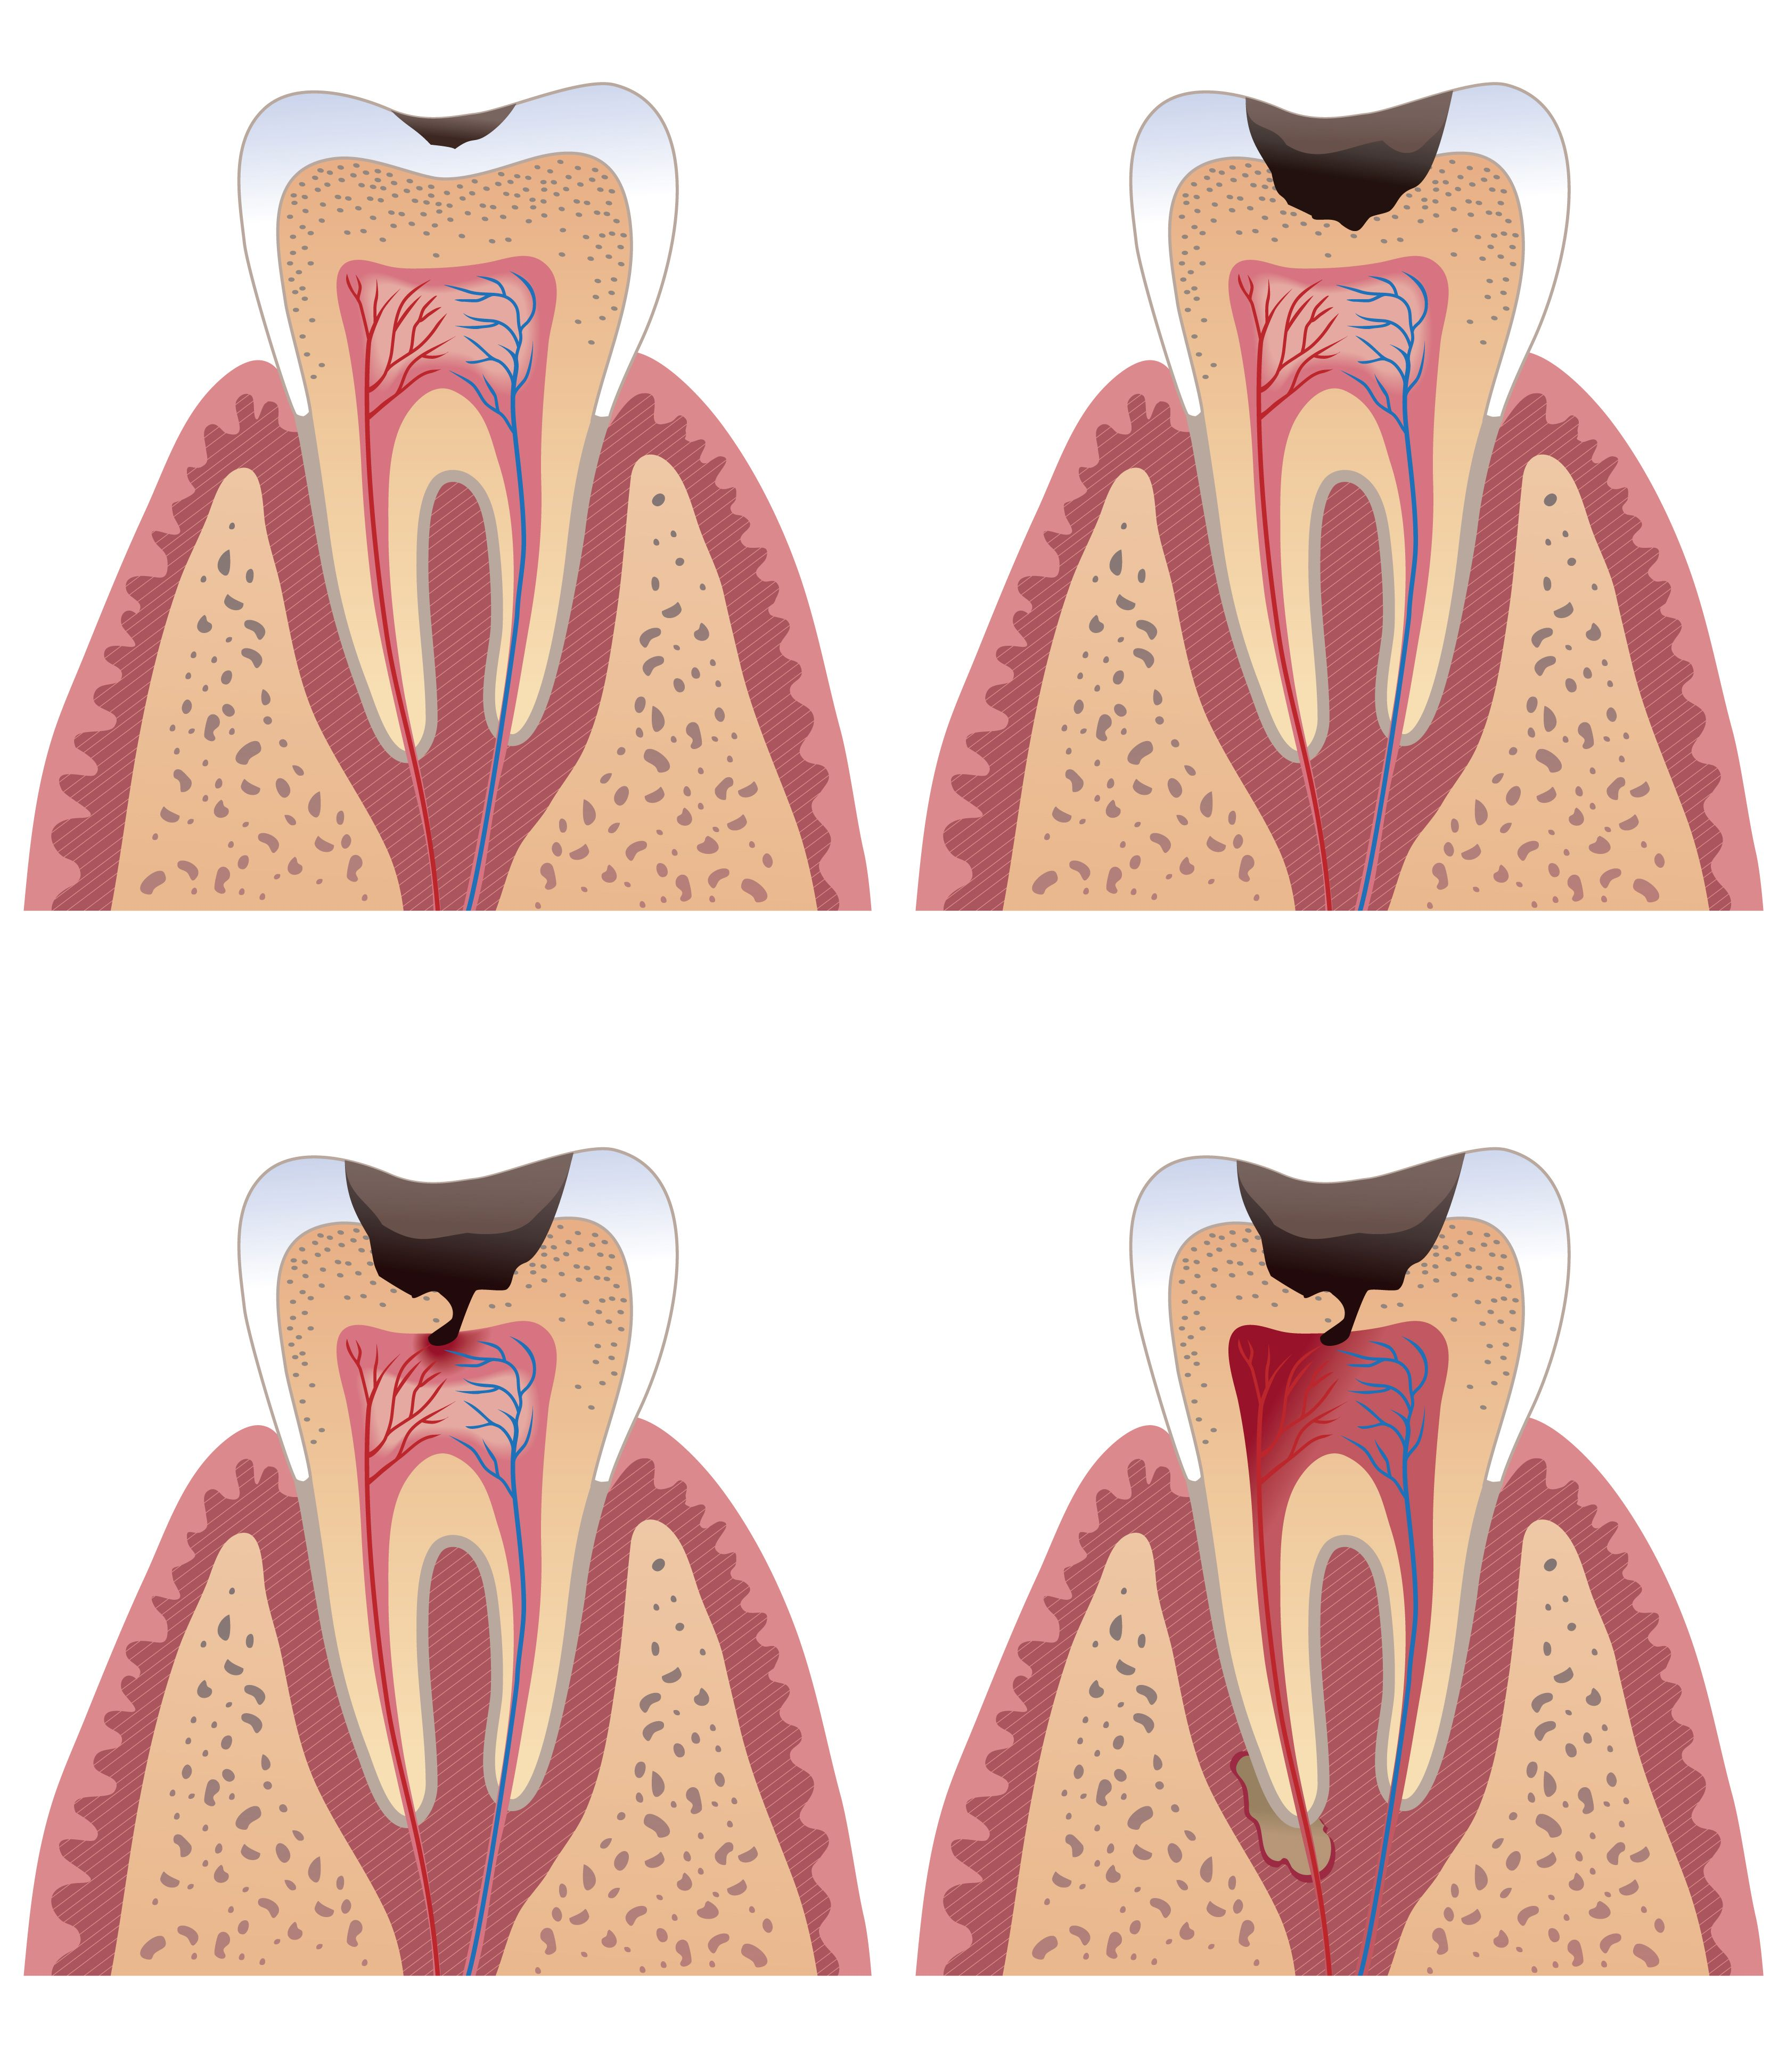 Decay Tooth Dental Caries Always interesting what you can find when ...